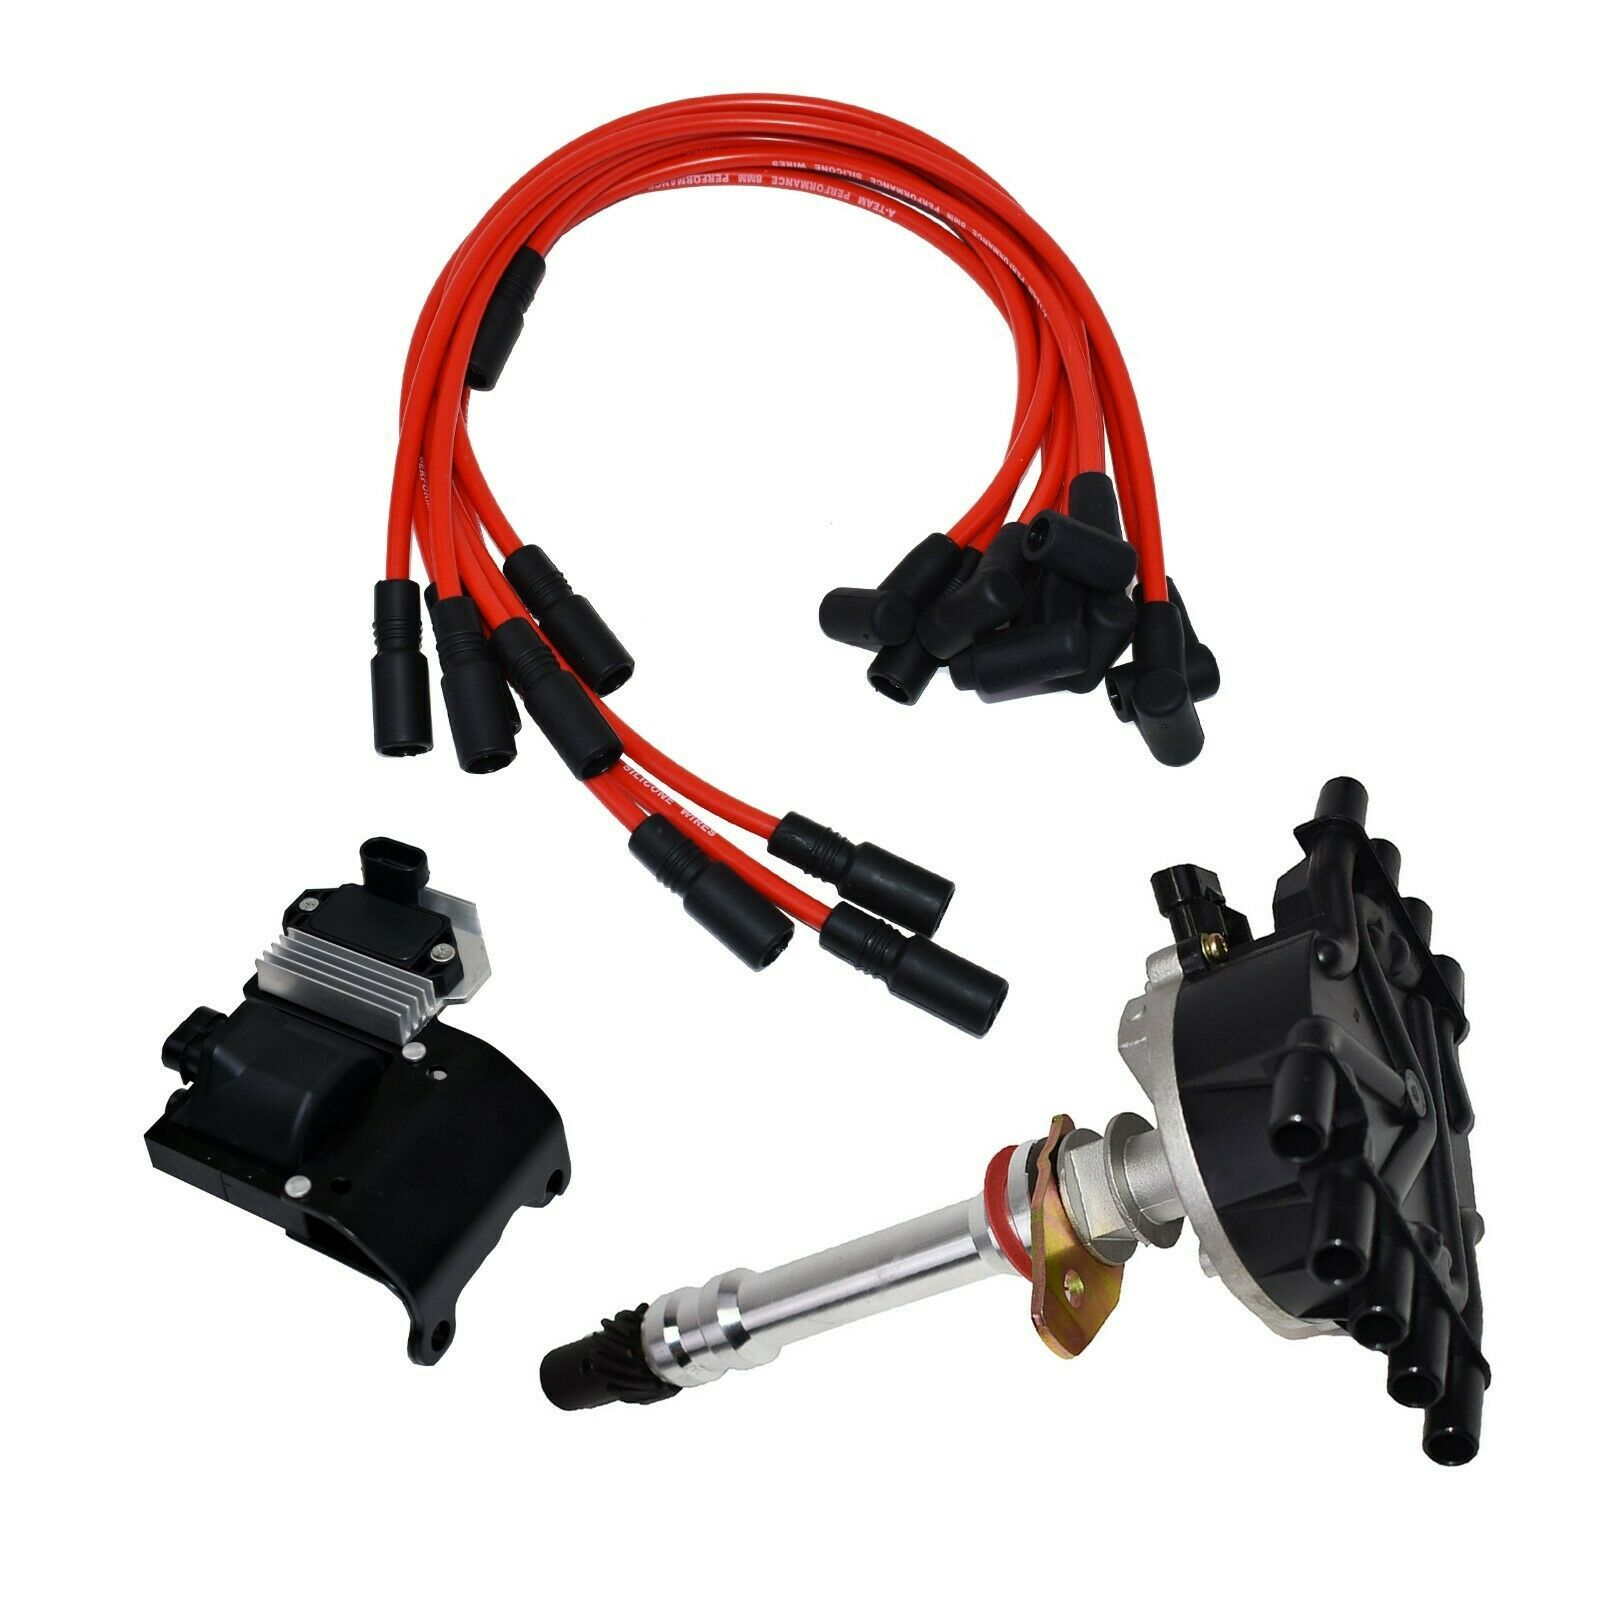 96 02 Chevy GMC VORTEC Distributor, 8mm Spark Plug Wires, Ignition Coil & Module